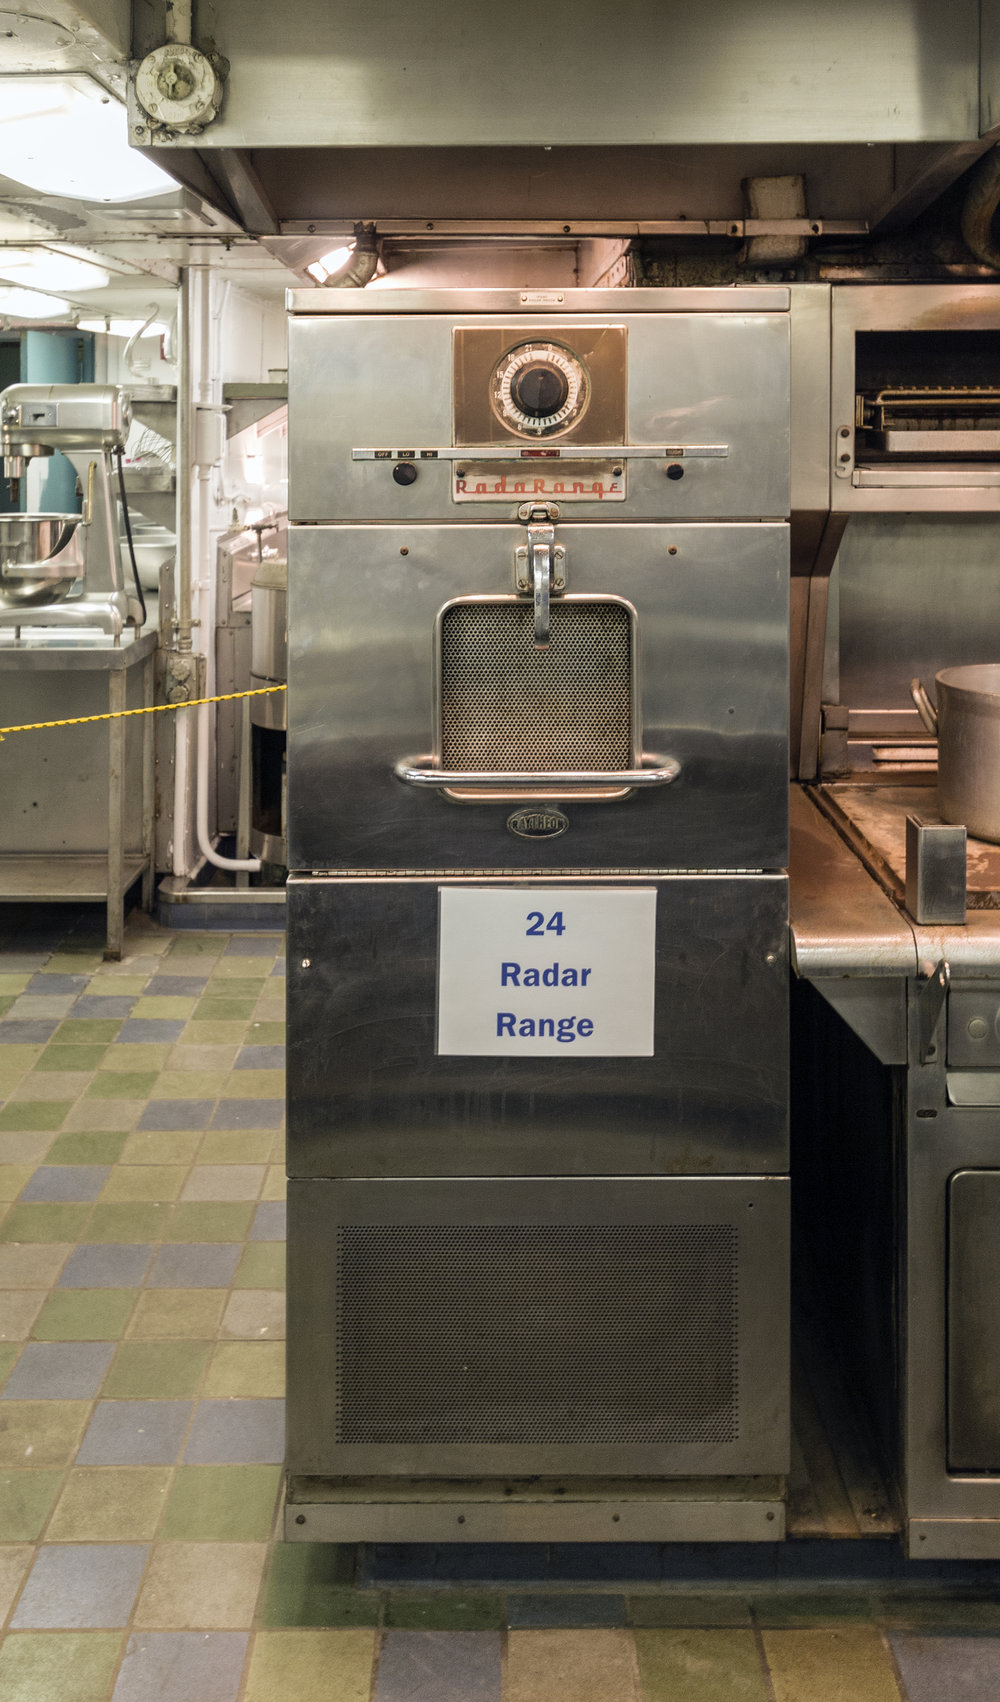 A Raytheon microwave oven.  Acroterion/Wikimedia Commons  (CC BY-SA 3.0)